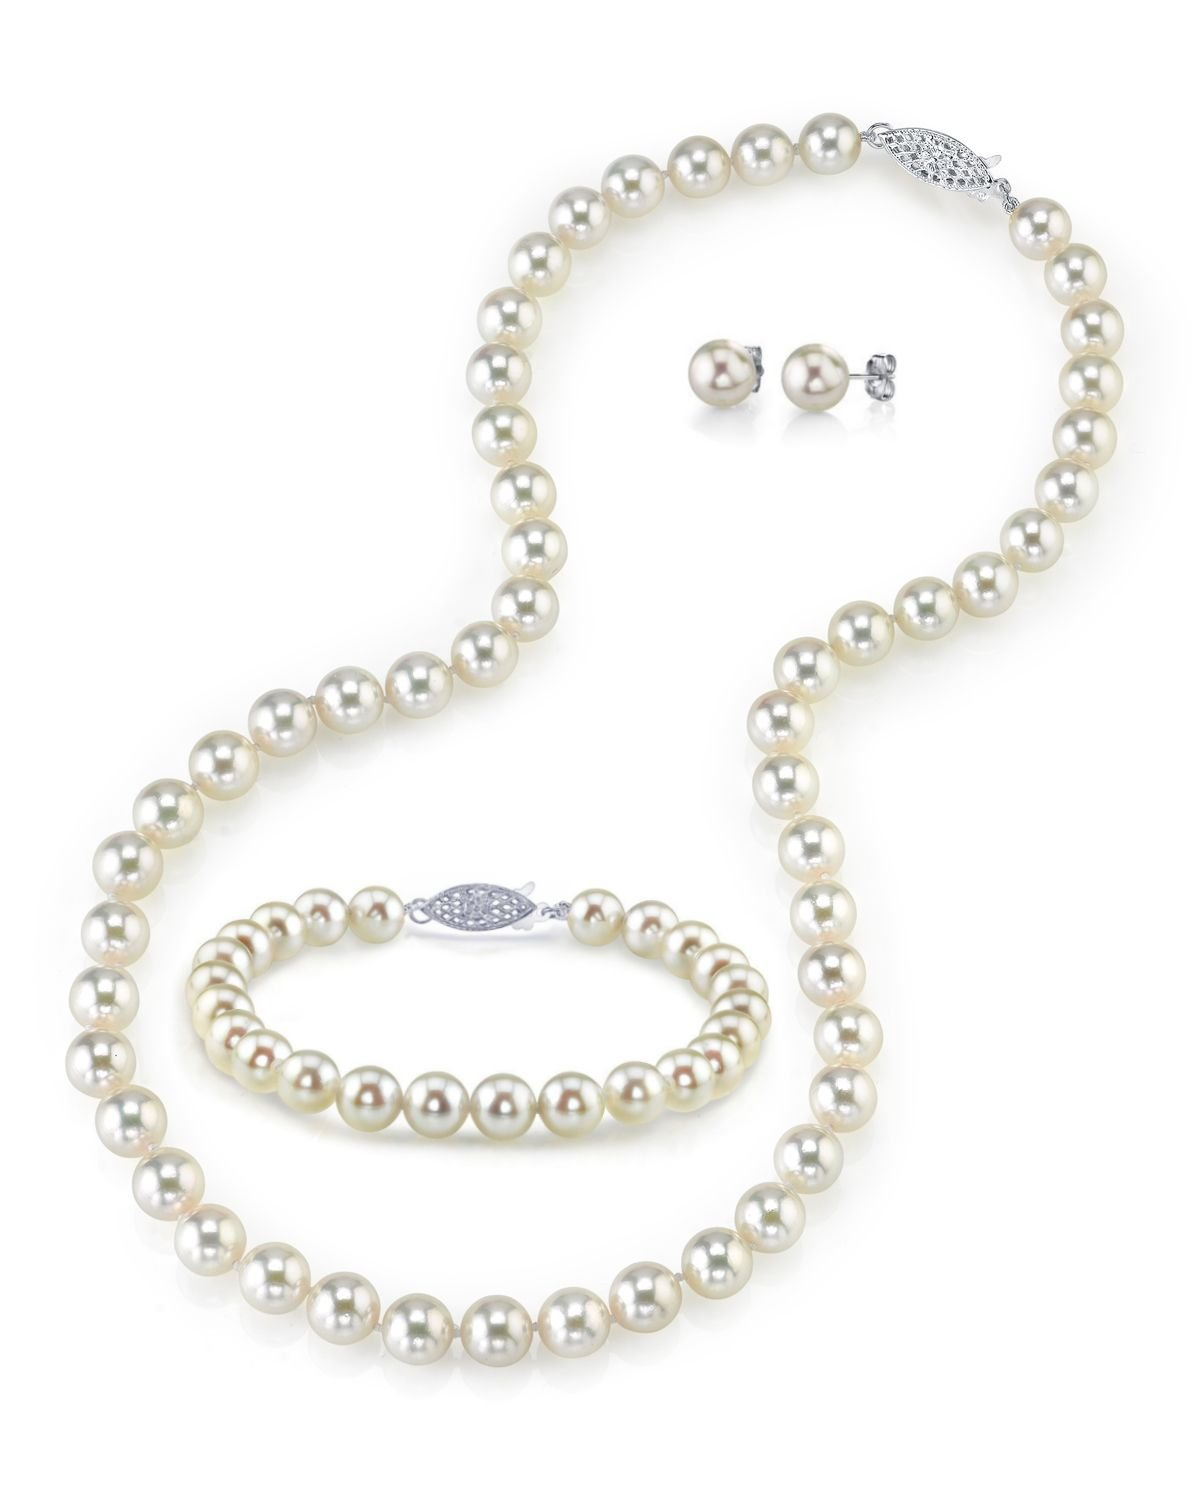 14K Gold 6.0-6.5mm White Akoya Cultured Pearl Necklace, Bracelet & Earrings Set, 18'' - AAA Quality